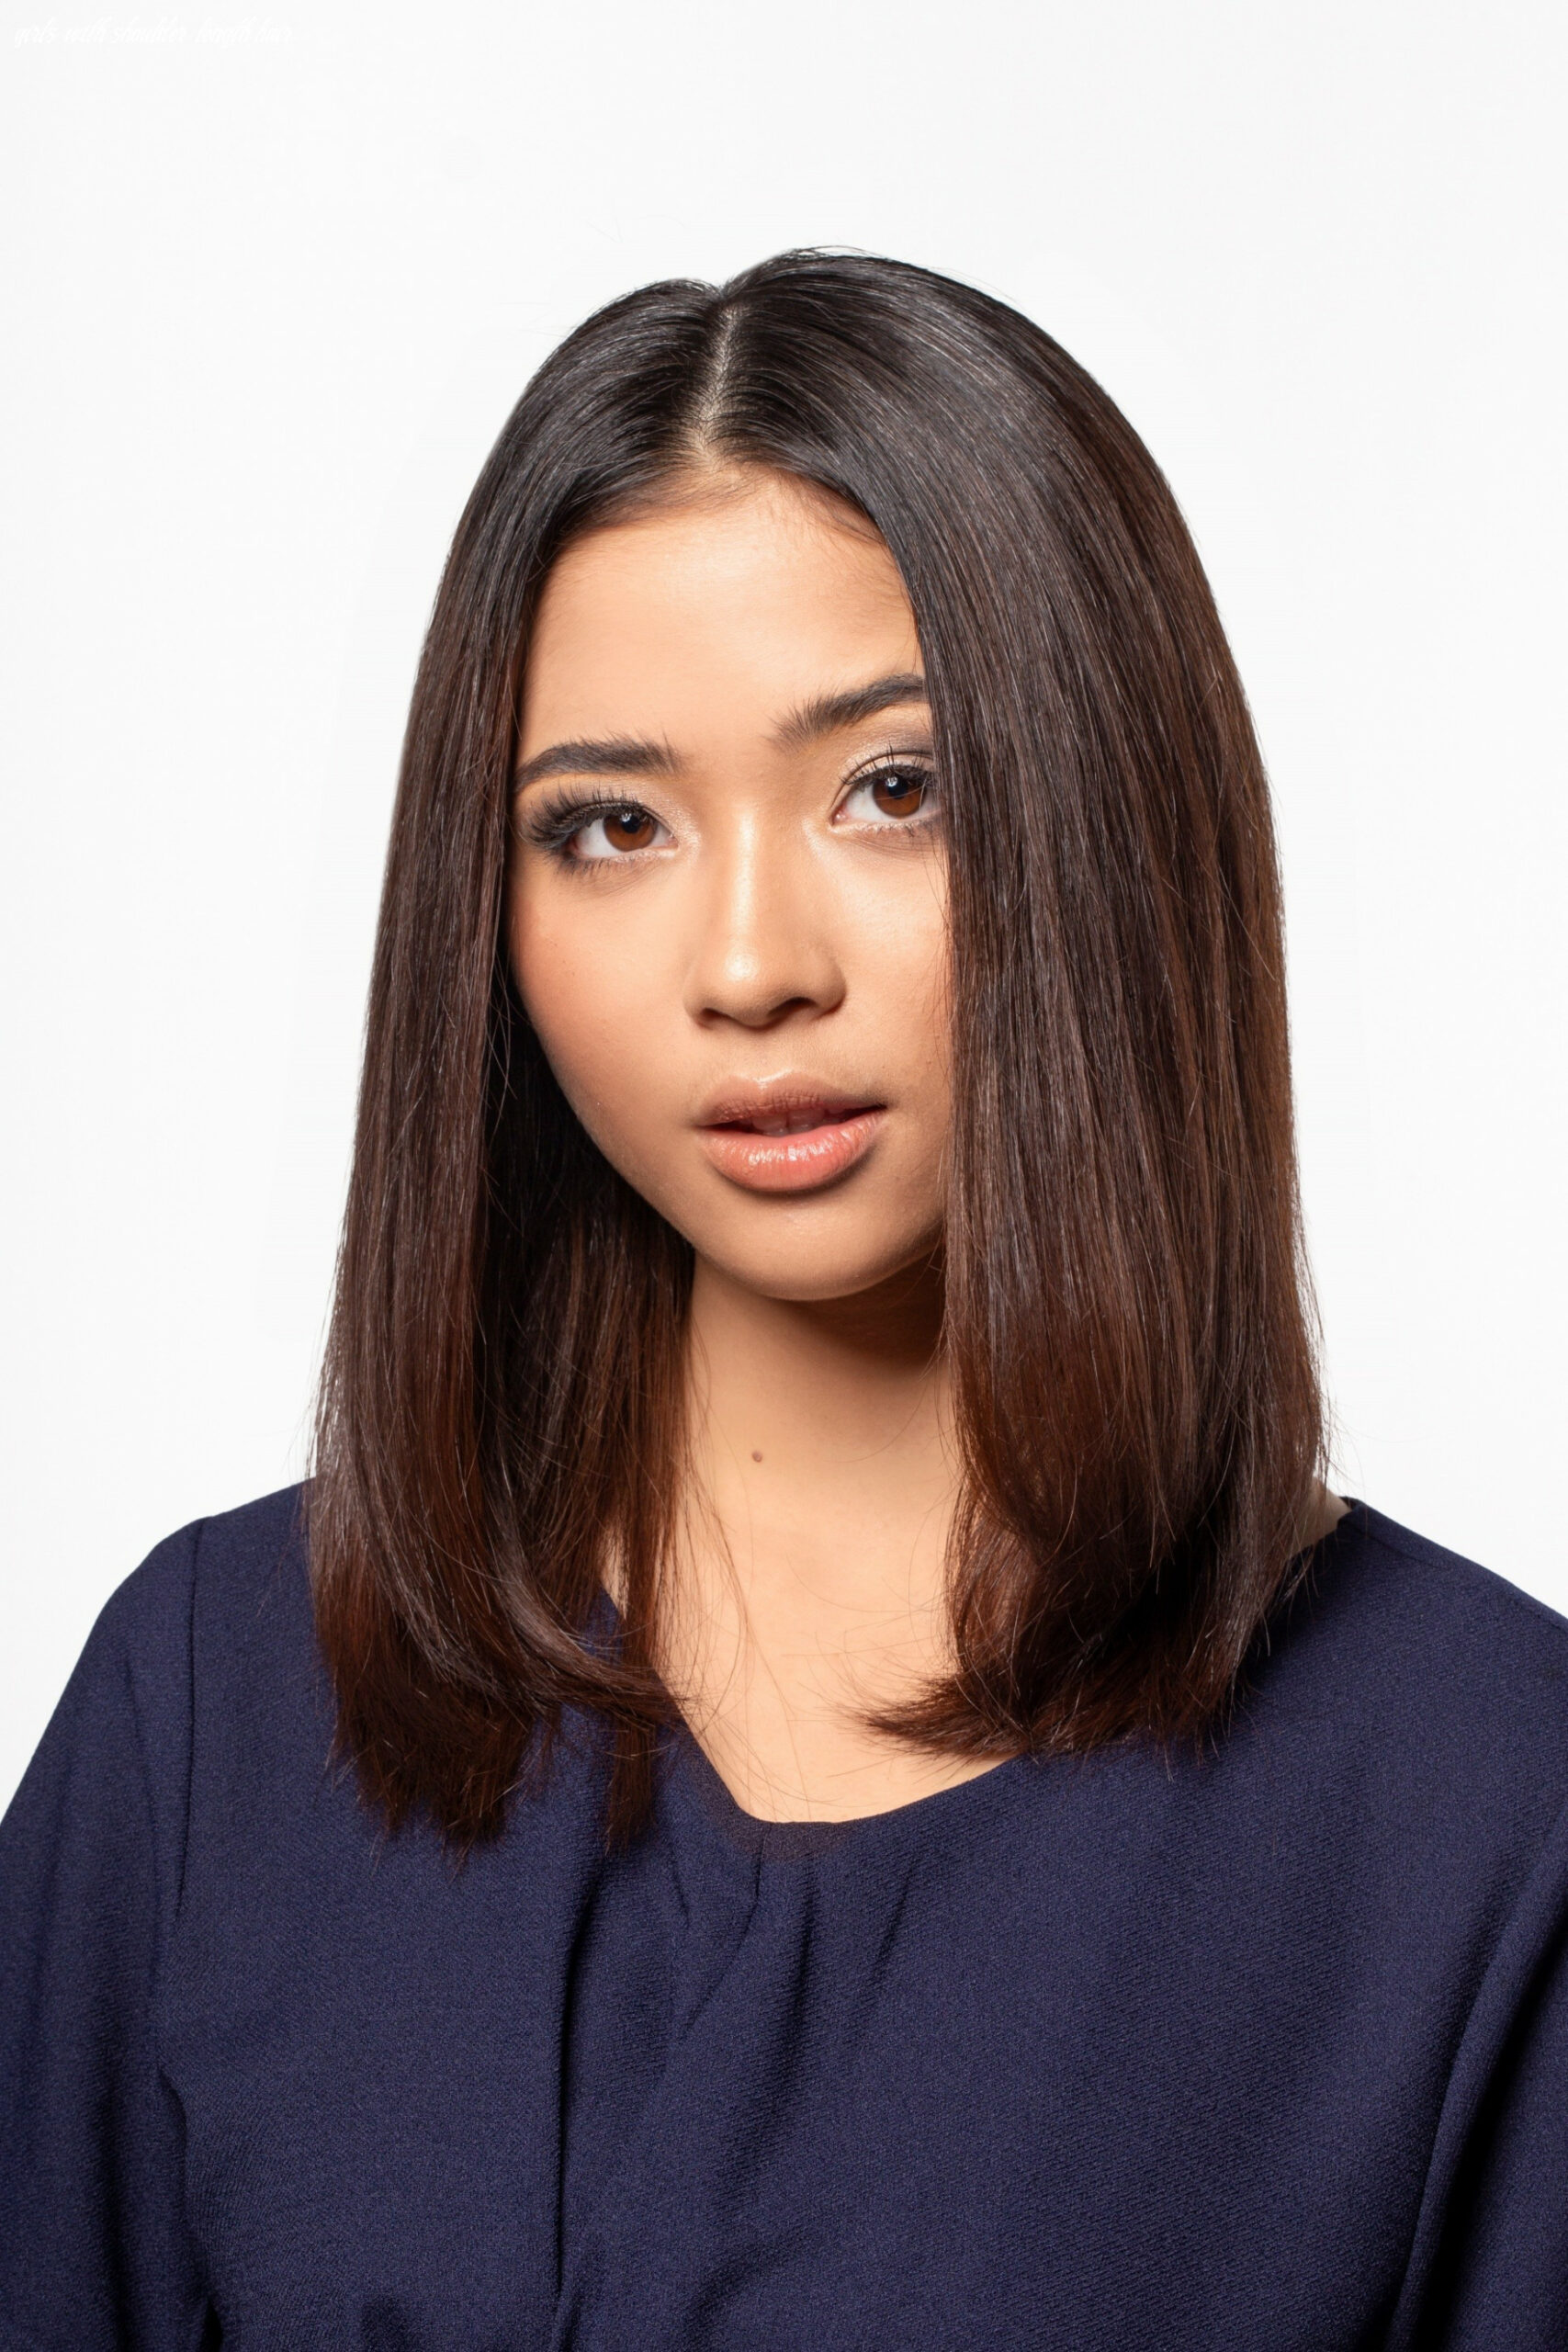 Shoulder length hairstyles for filipinas | all things hair ph girls with shoulder length hair